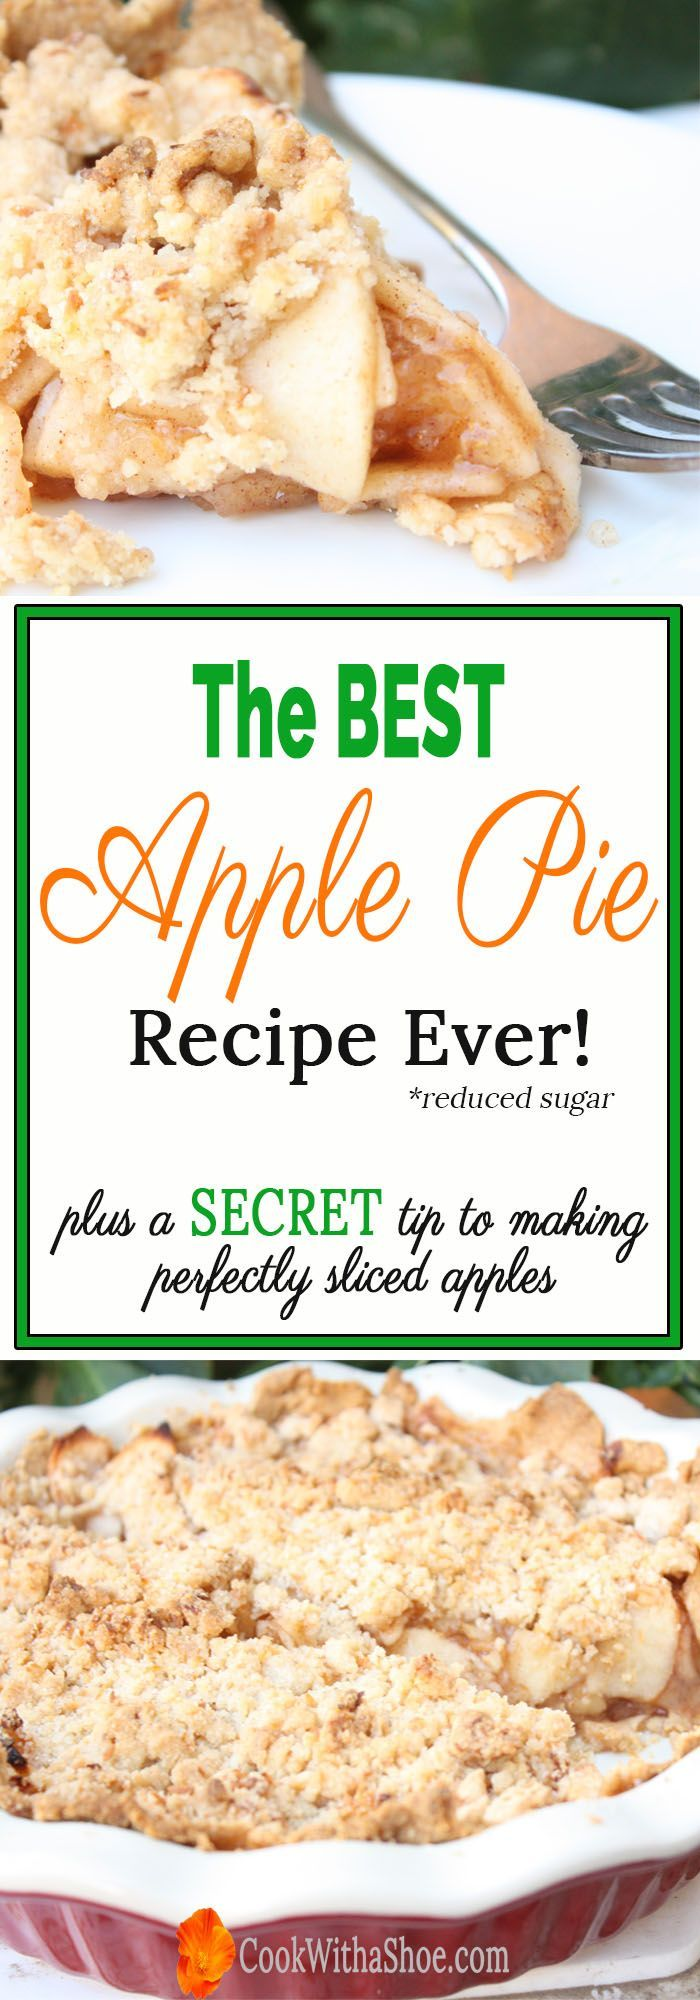 best apple pie recipe | apple pie | pie | reduced sugar apple pie | delicious apple pie with crumb topping | printable recipe | apple | pie | Cook With a Shoe